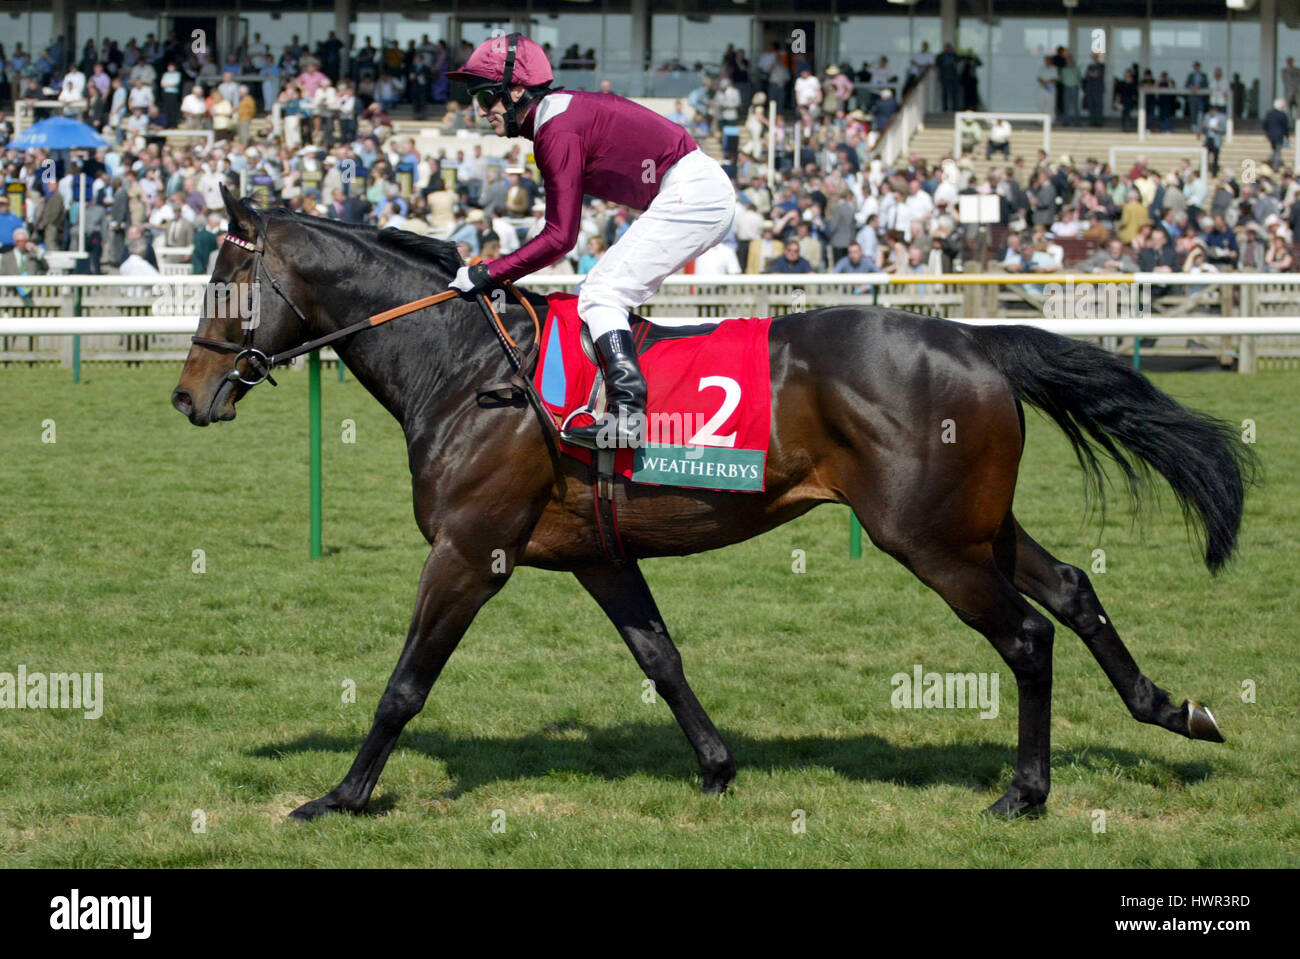 OLDEN TIMES RIDDEN BY K.FALLON NEWMARKET ENGLAND 16 April 2003 - Stock Image